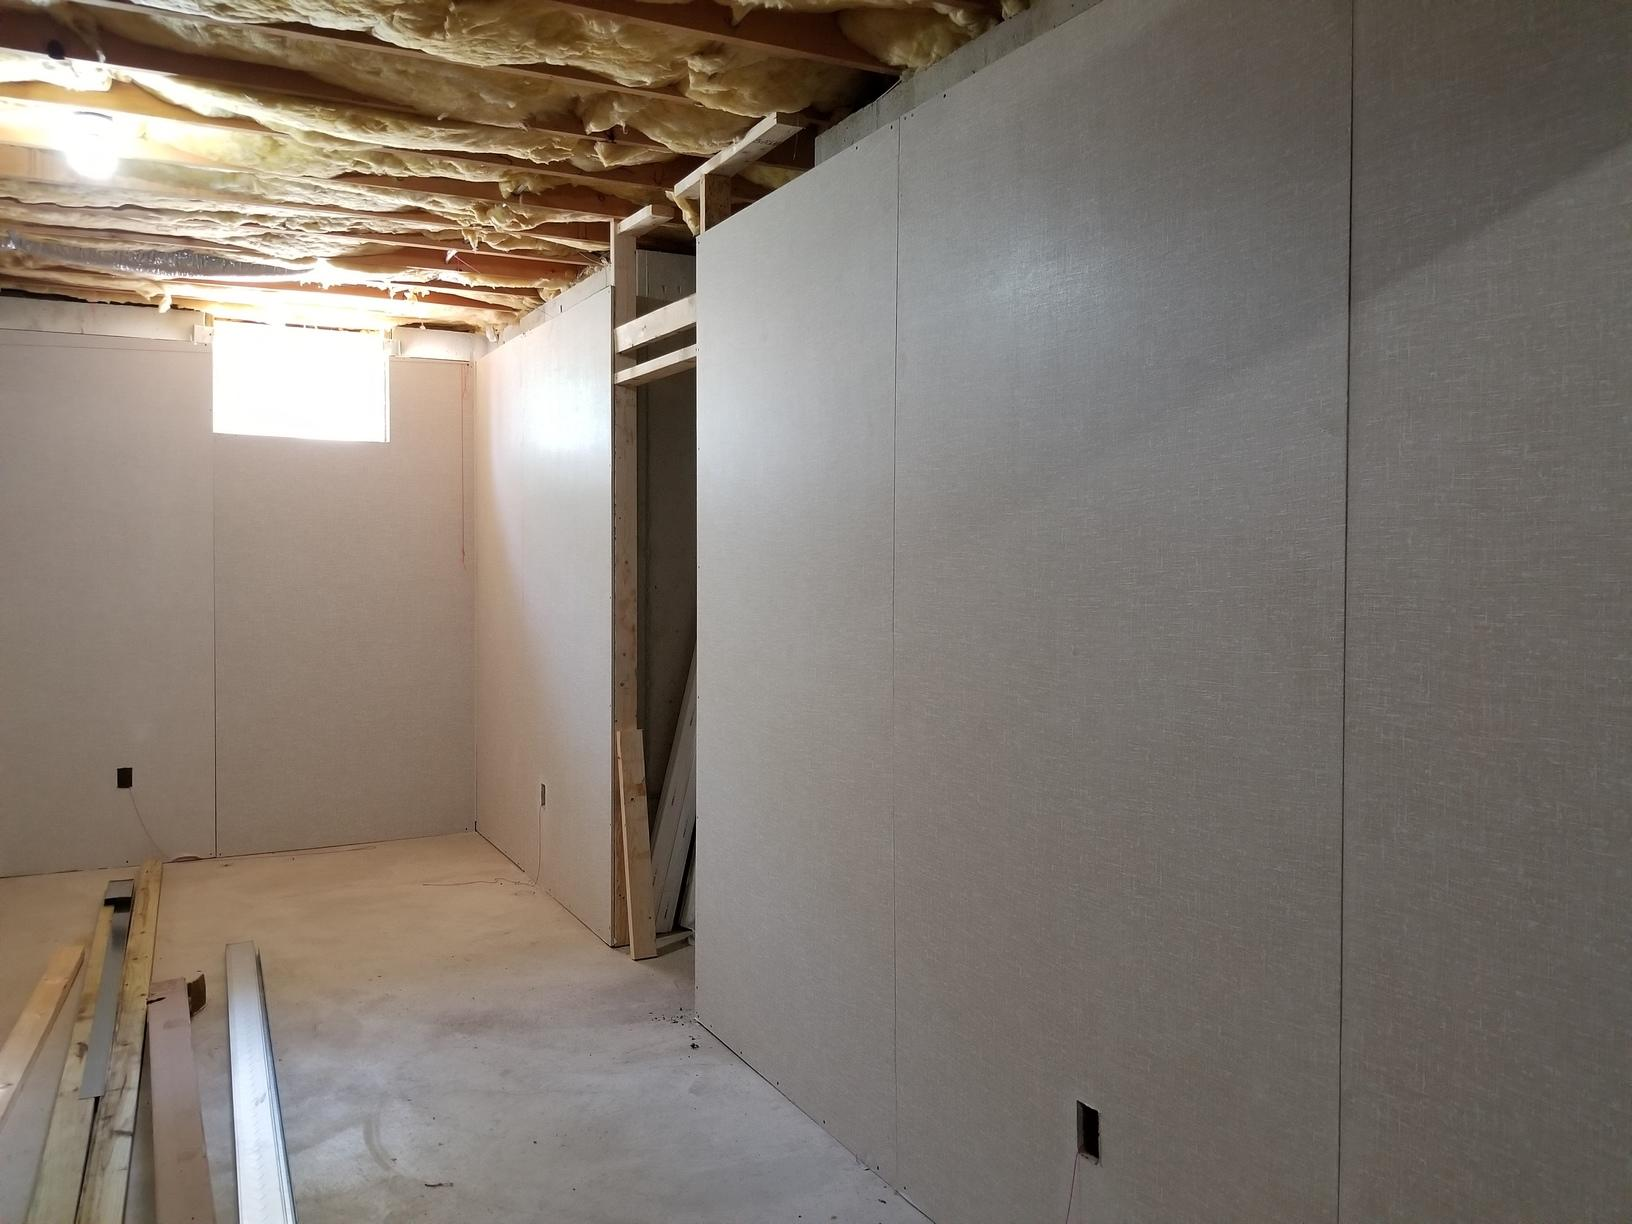 Everlast Exterior walls in great room